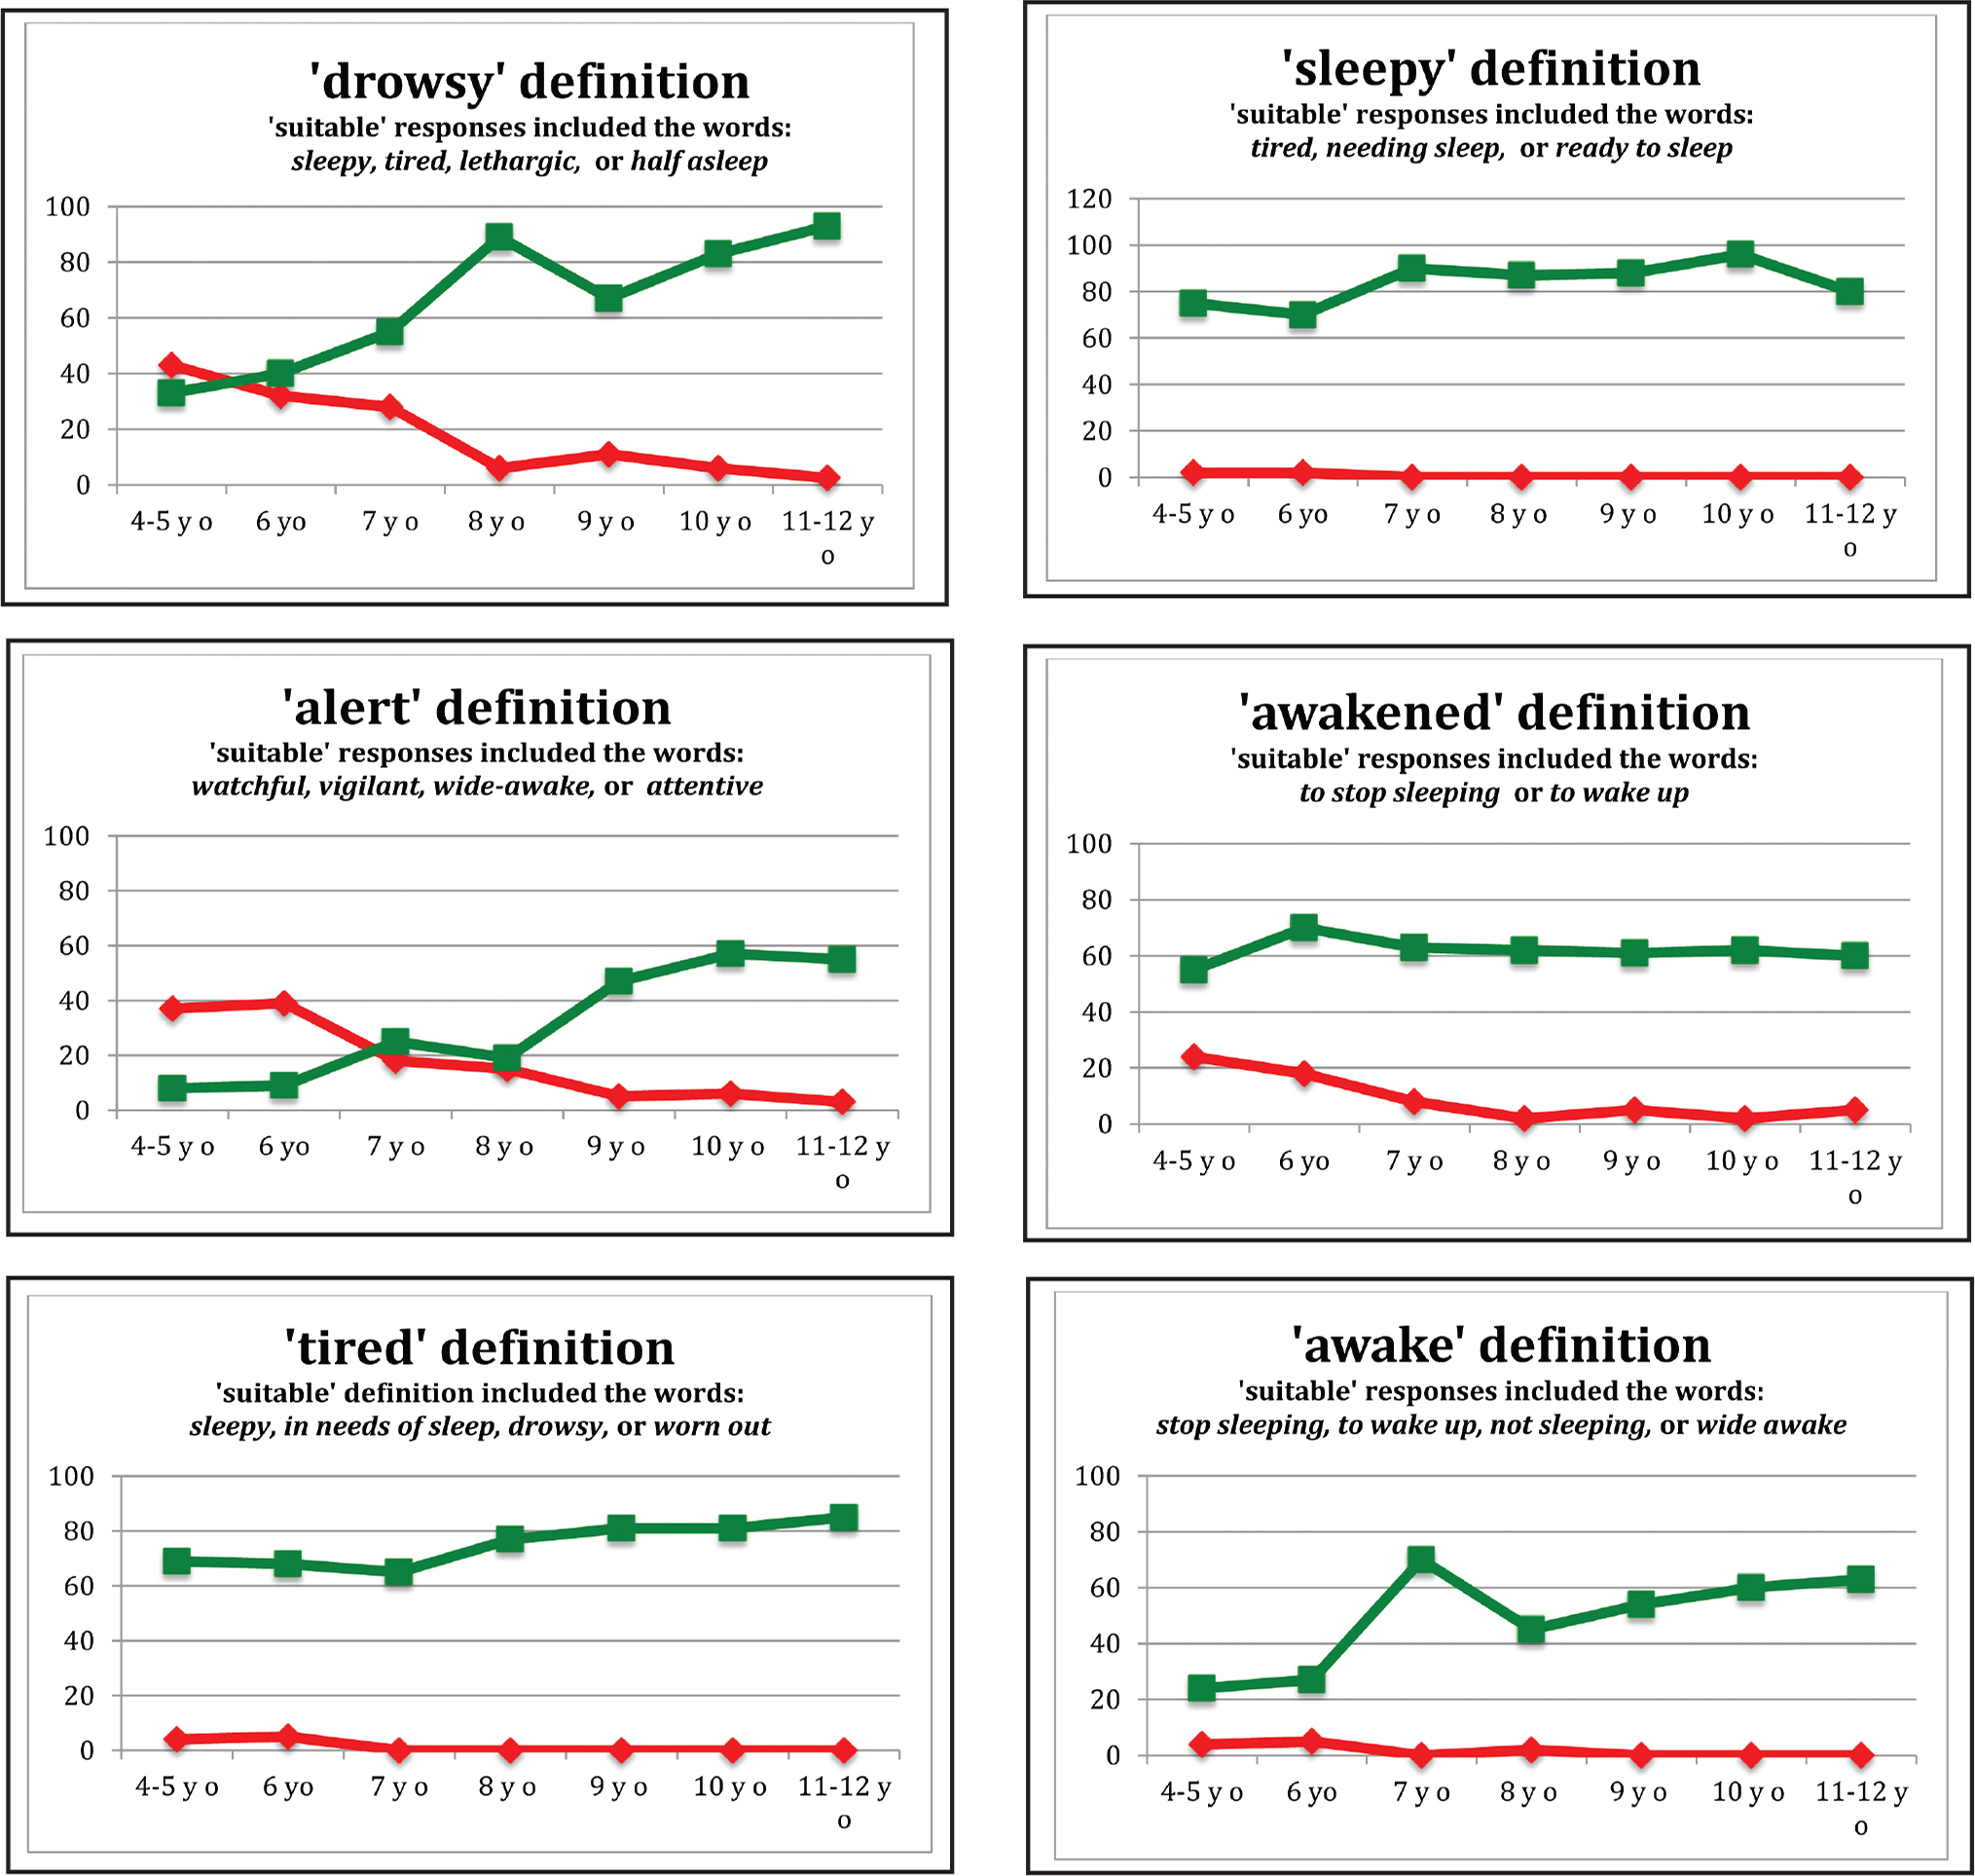 Graphs showing percentages of suitable (green line) responses and don't know (red line) responses for each sleep-associated word in the study. Note that unsuitable responses were not graphed.